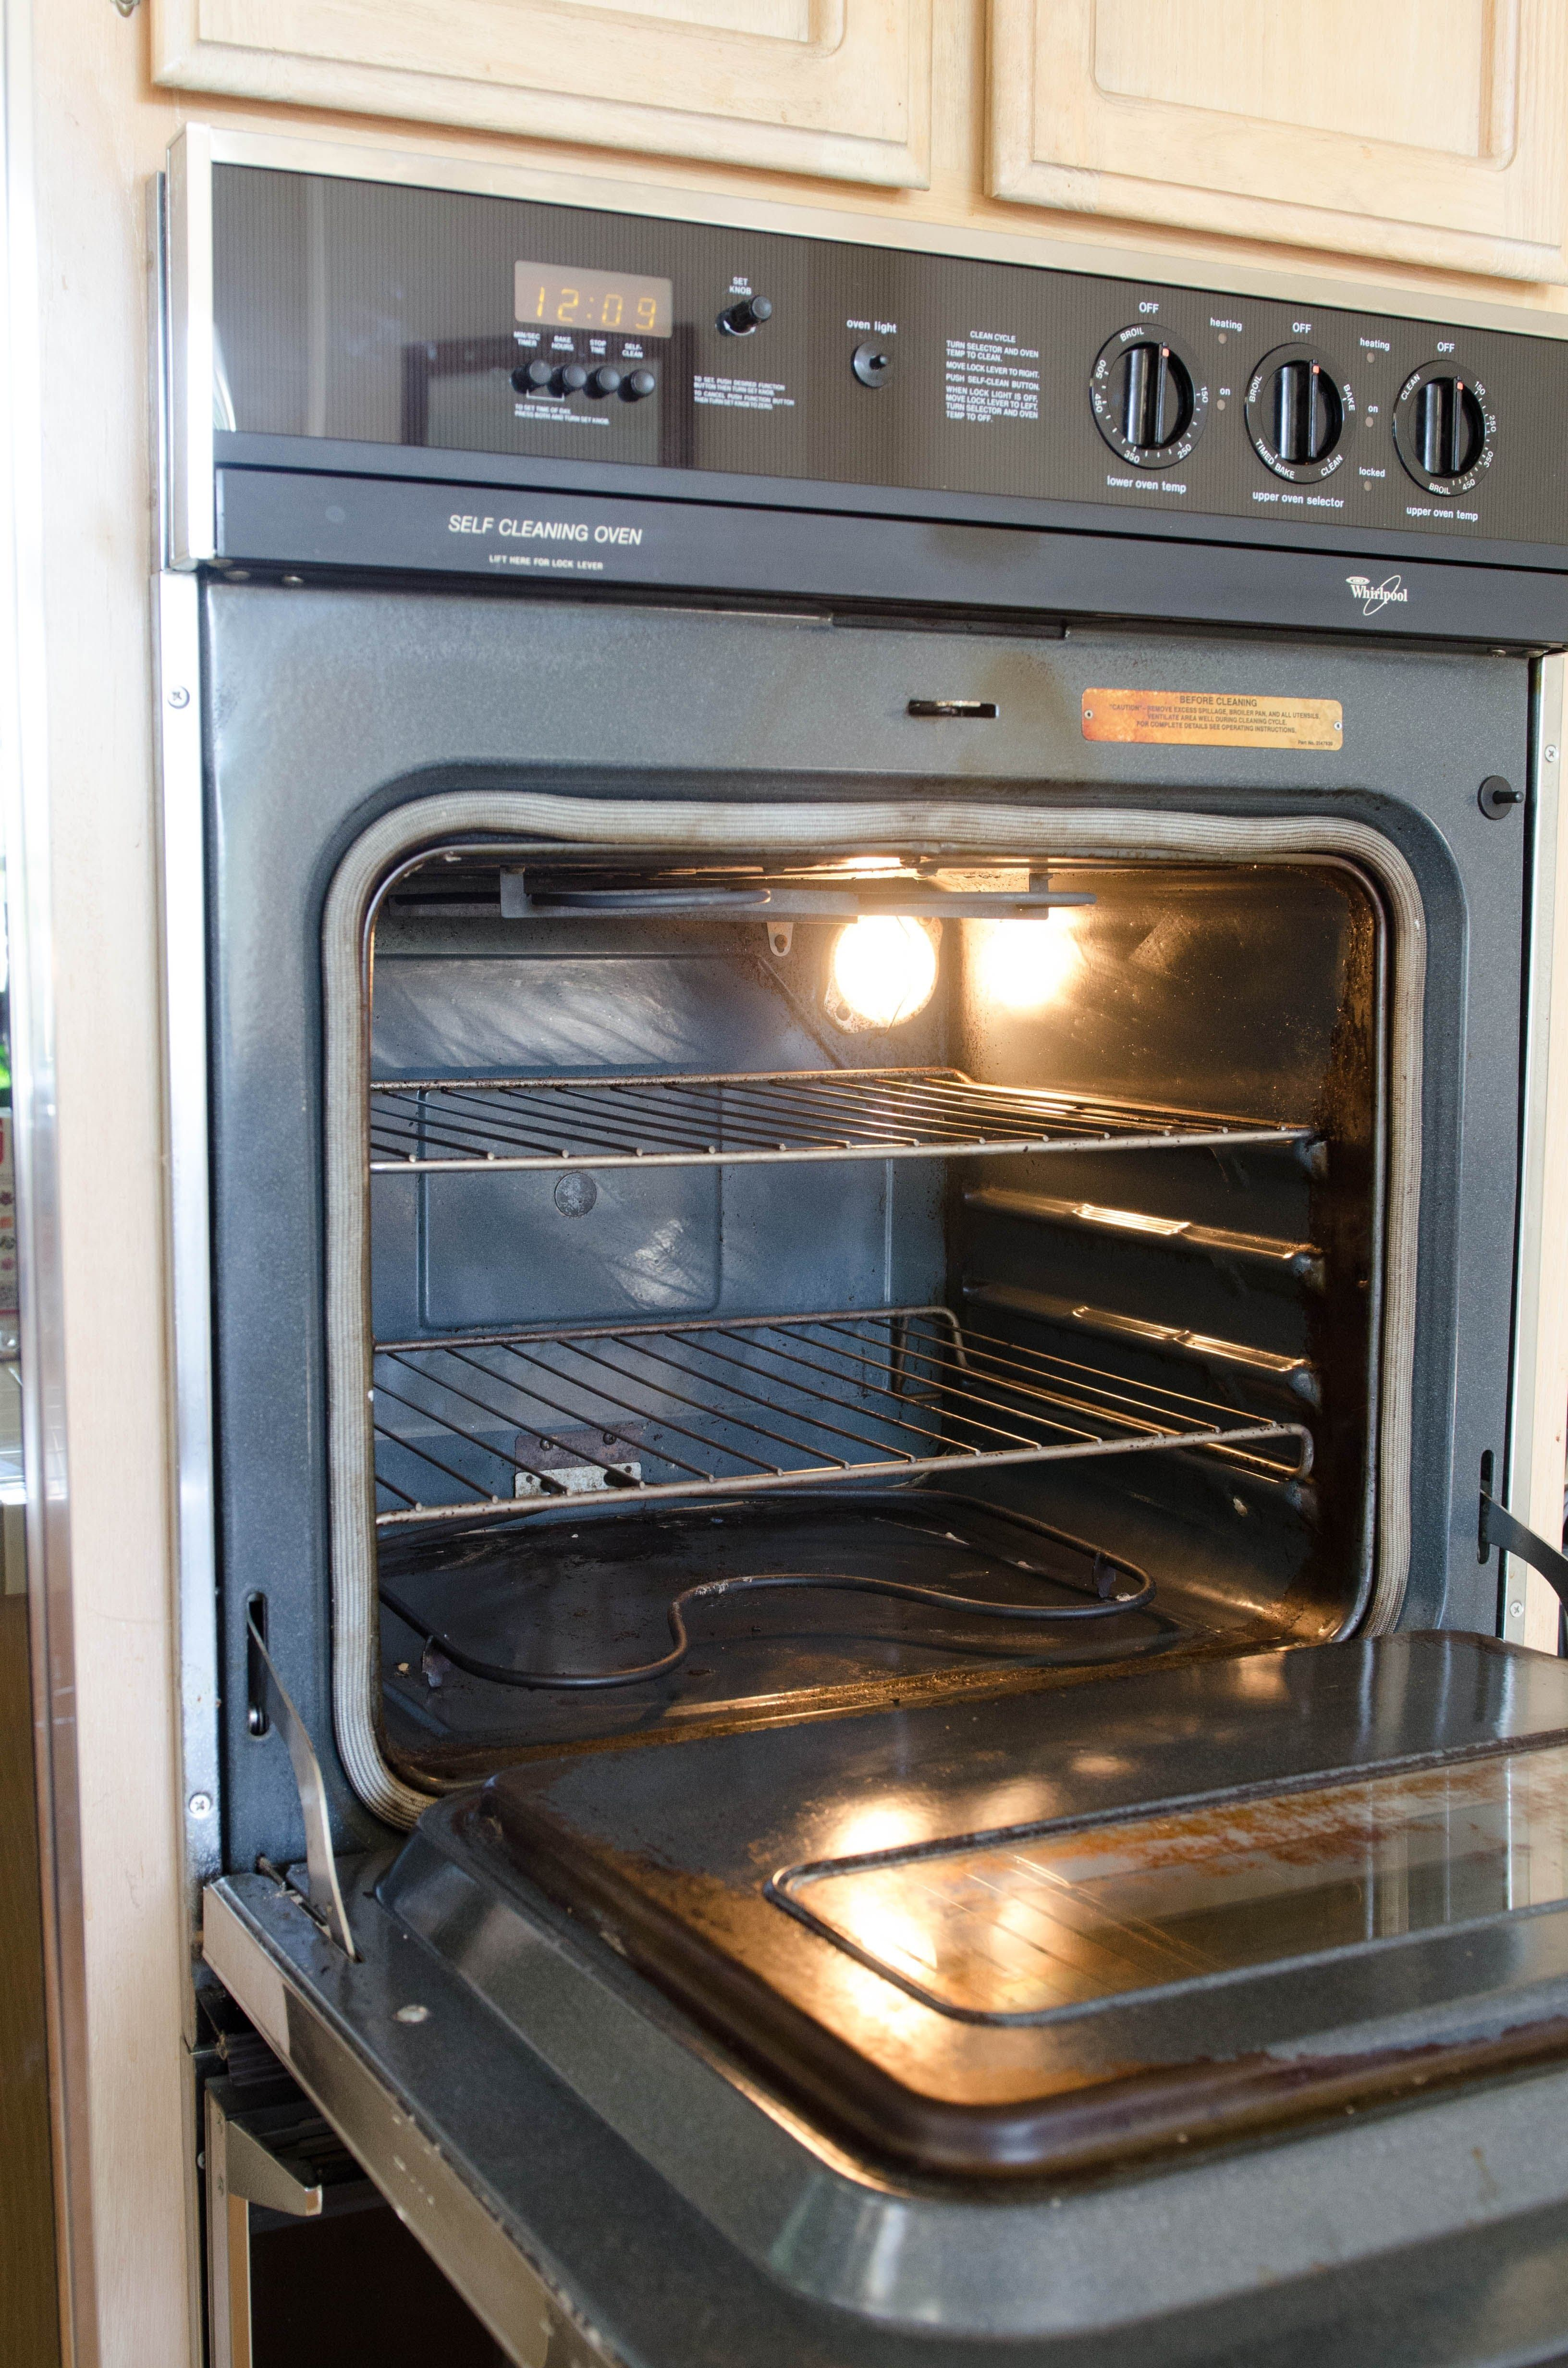 How To Clean An Oven With Baking Soda And Vinegar Oven Cleaner